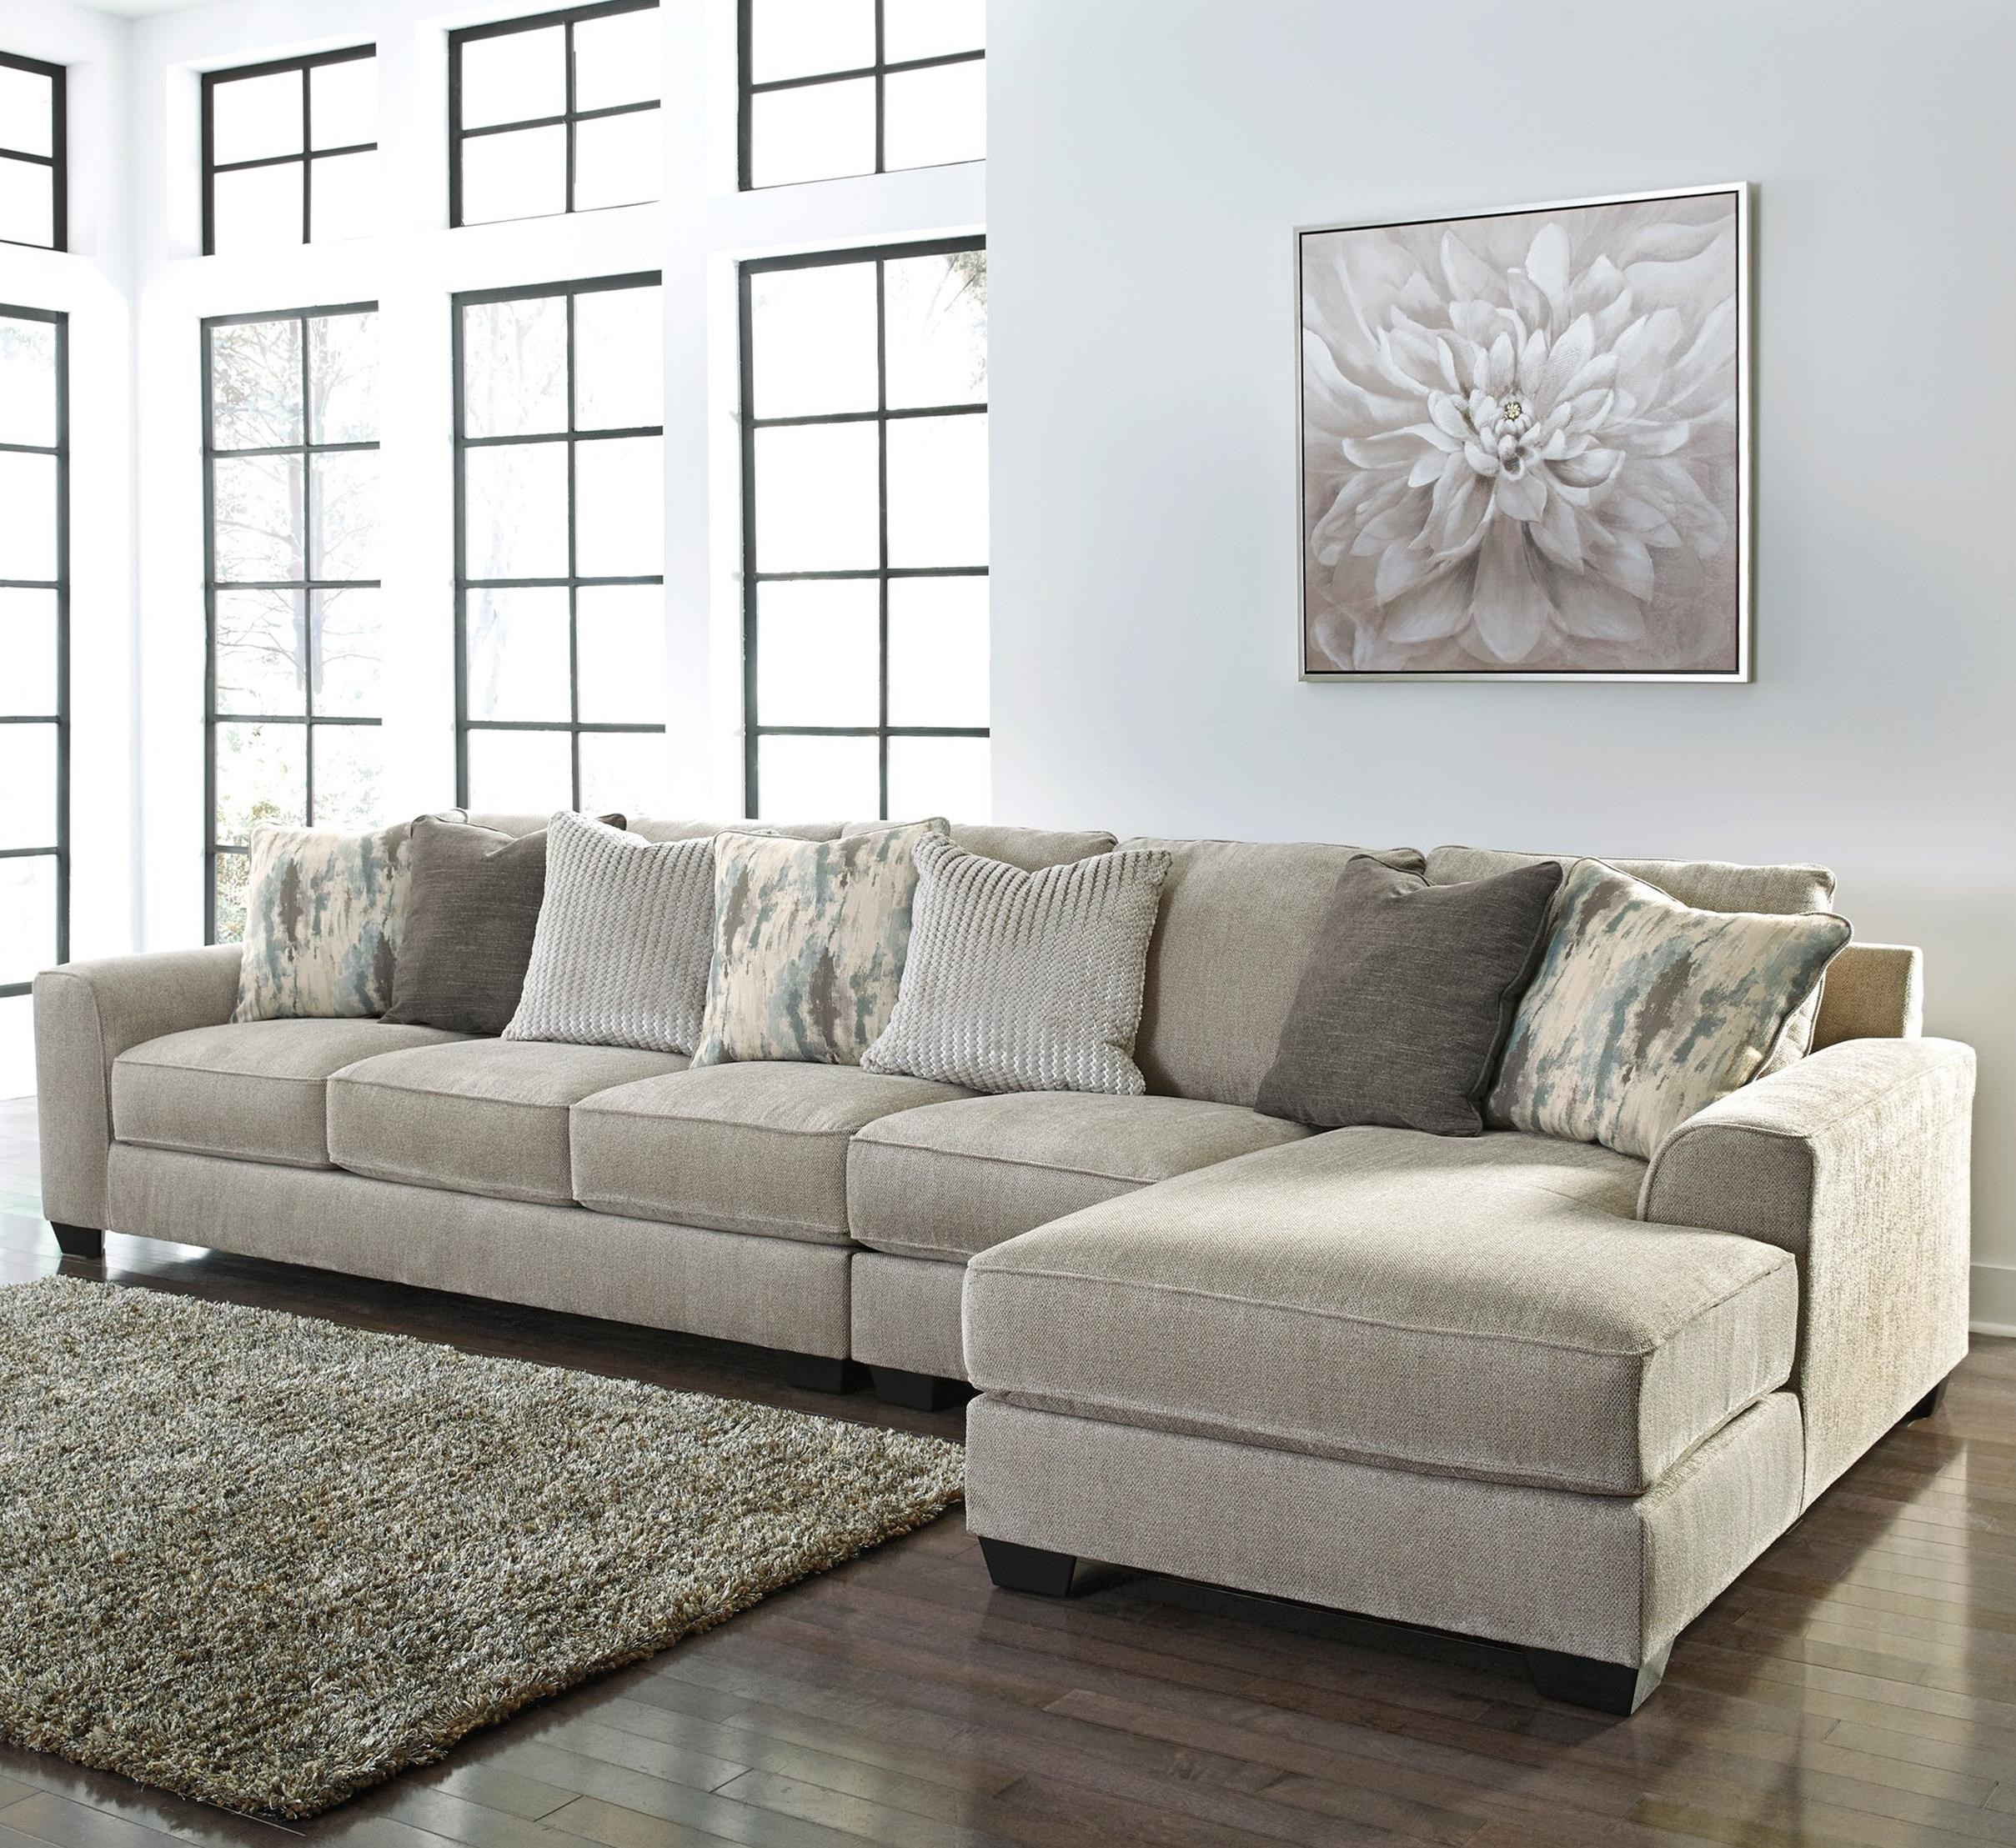 Ardsley 3-Piece Sectional with Right Chaise by Benchcraft at Miller Waldrop Furniture and Decor